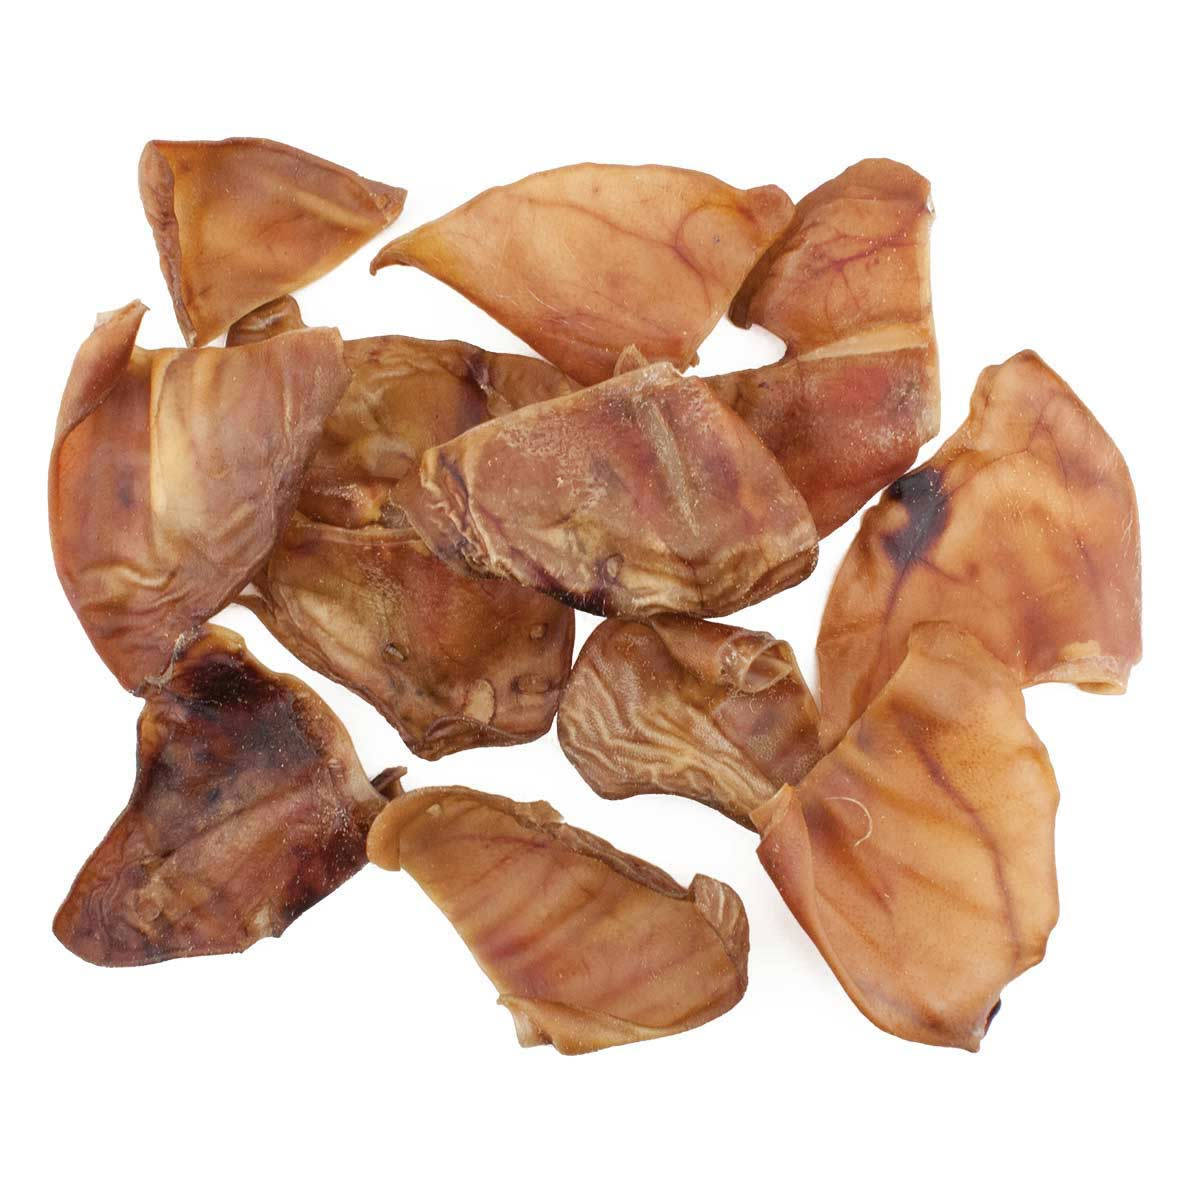 50 Pack of Pig Ears for Dogs - Treats